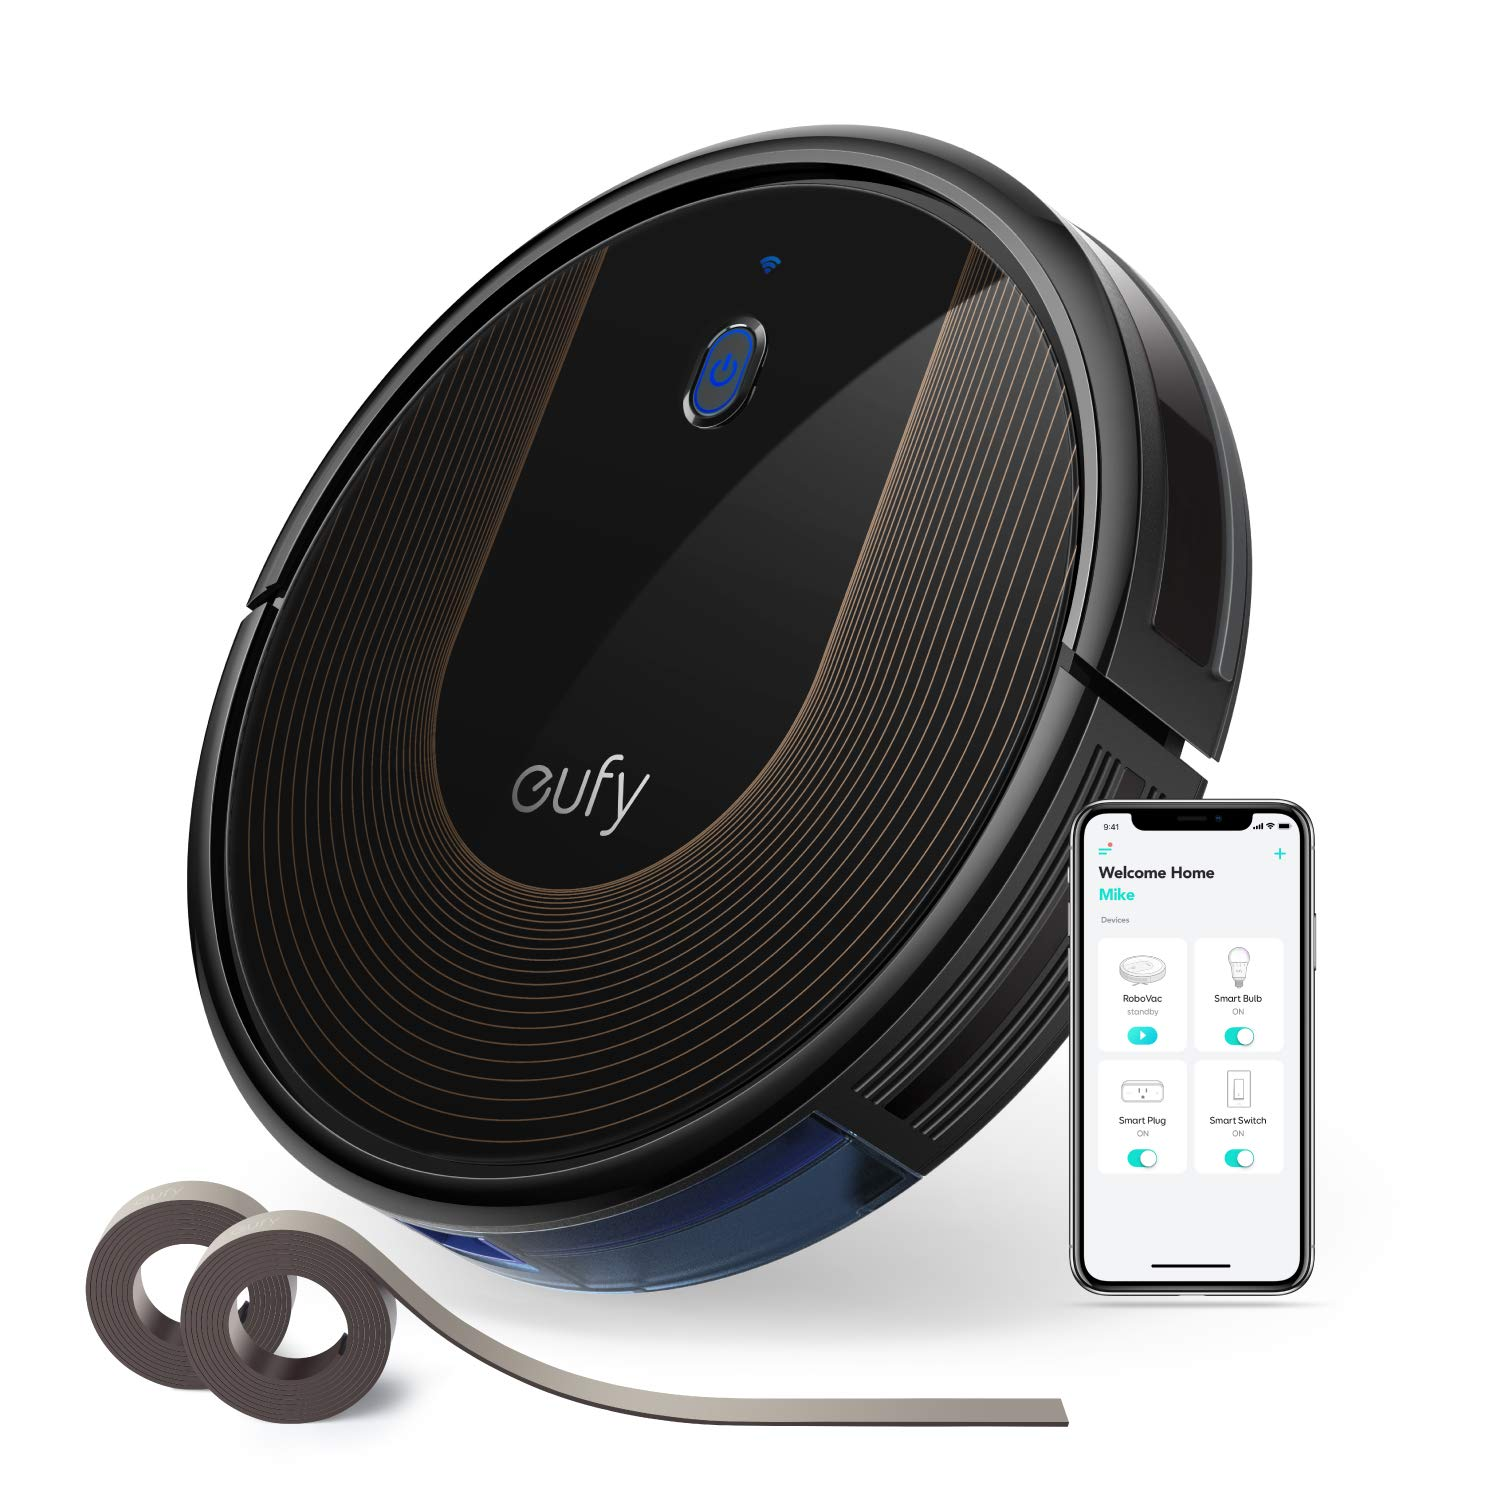 eufy [BoostIQ RoboVac 30C, Wi-Fi, Upgraded, Super-Thin, 1500Pa Strong Suction, 13.2 ft Boundary Strips Included, Quiet, Self-Charging Robotic Vacuum Cleaner, Cleans Hard Floors to Medium-Pile Carpets